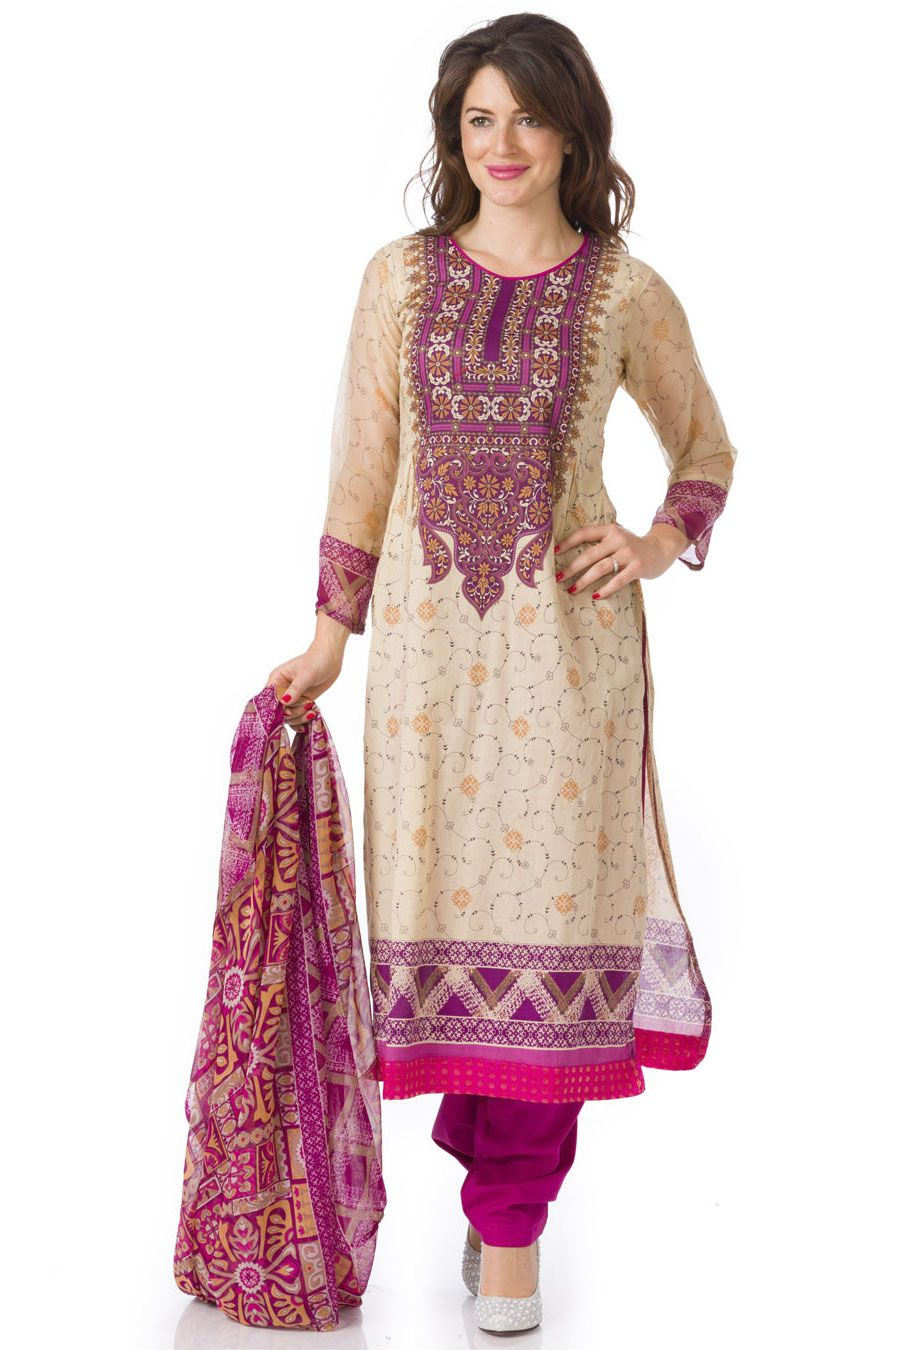 Lawn cotton Salwar Suits - 32327 : Rupali Online | bollywood ...